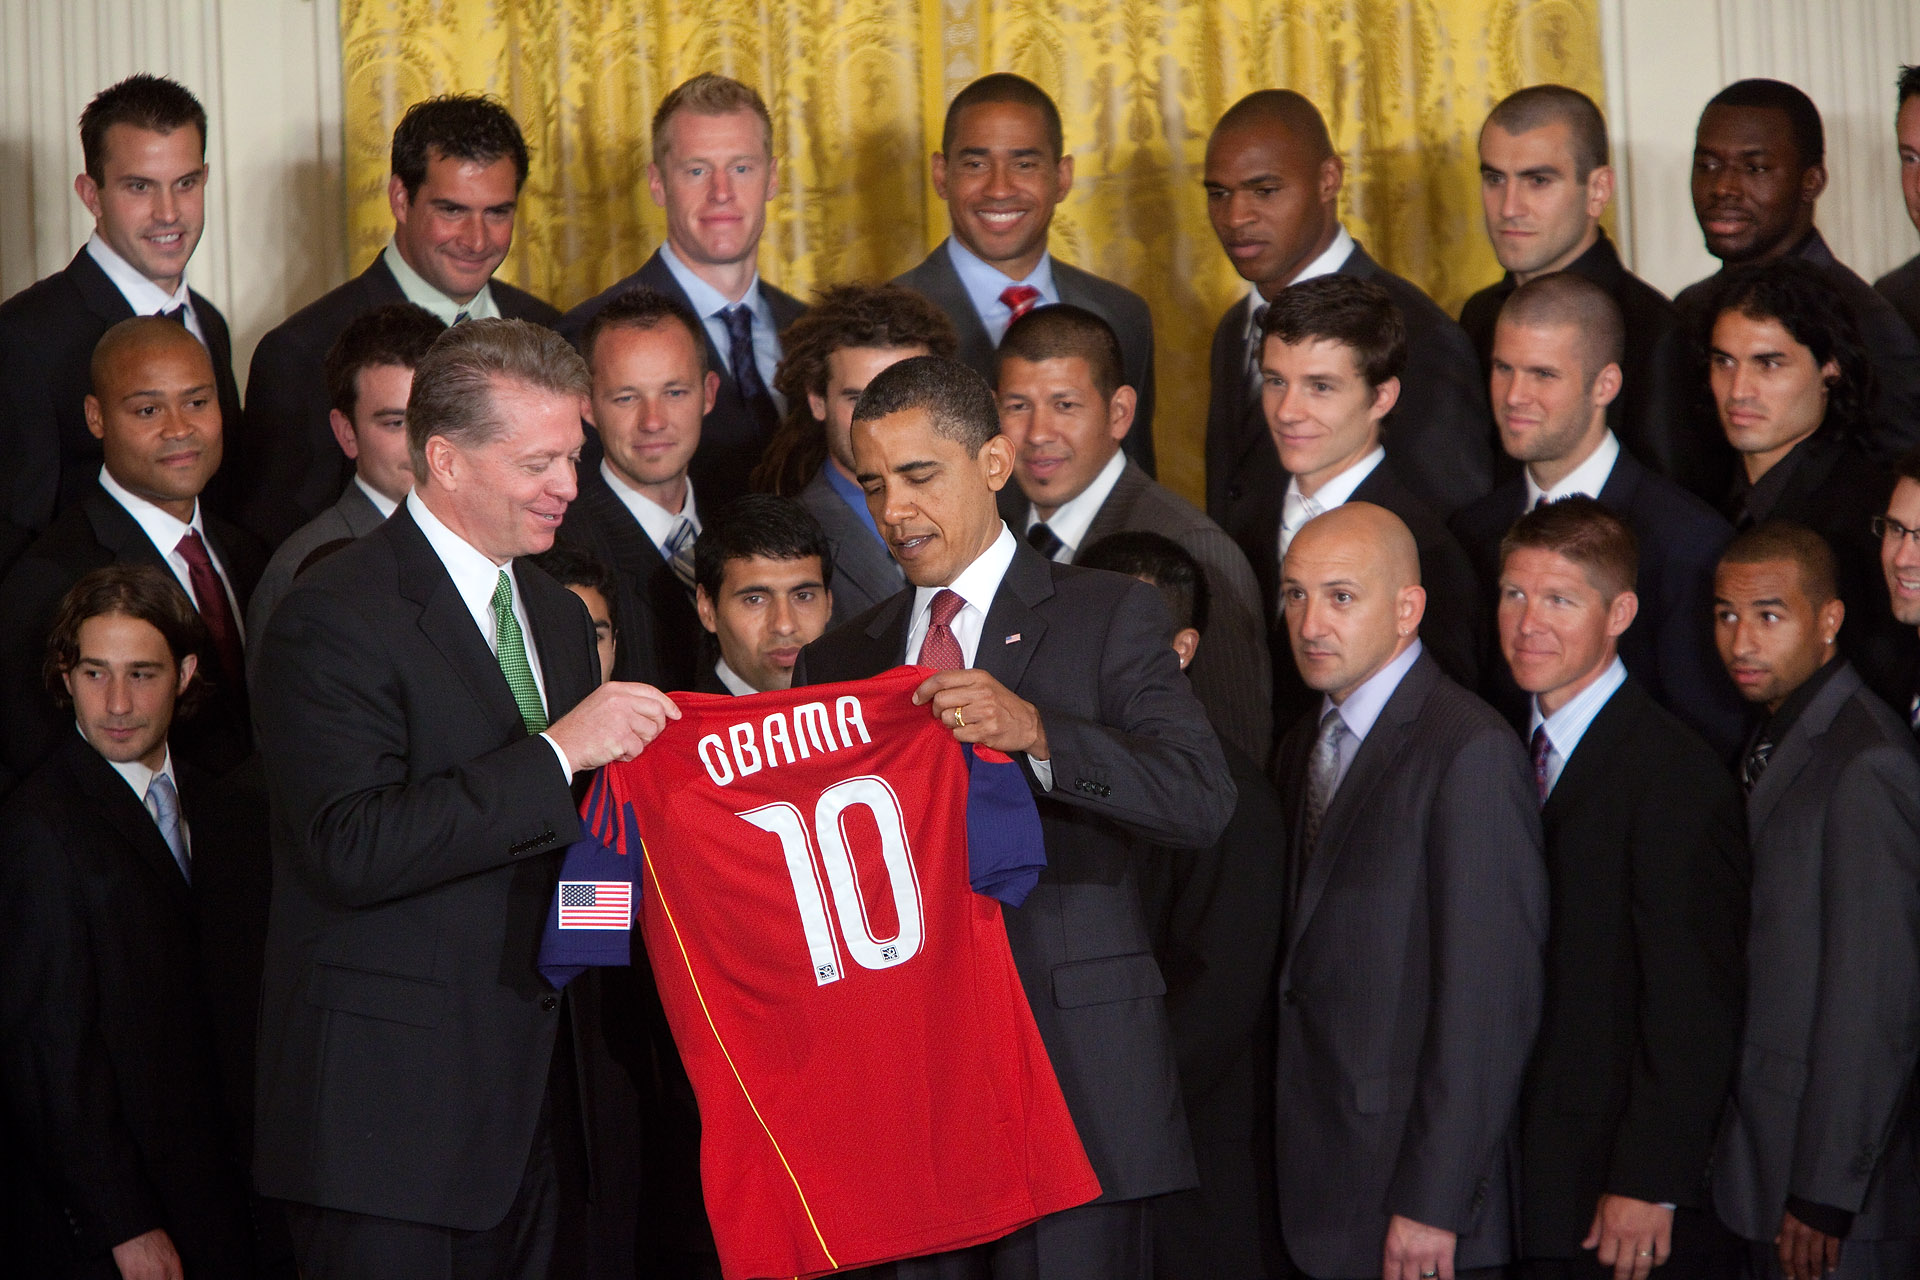 President Obama is Presented with Real Salt Lake Jersey